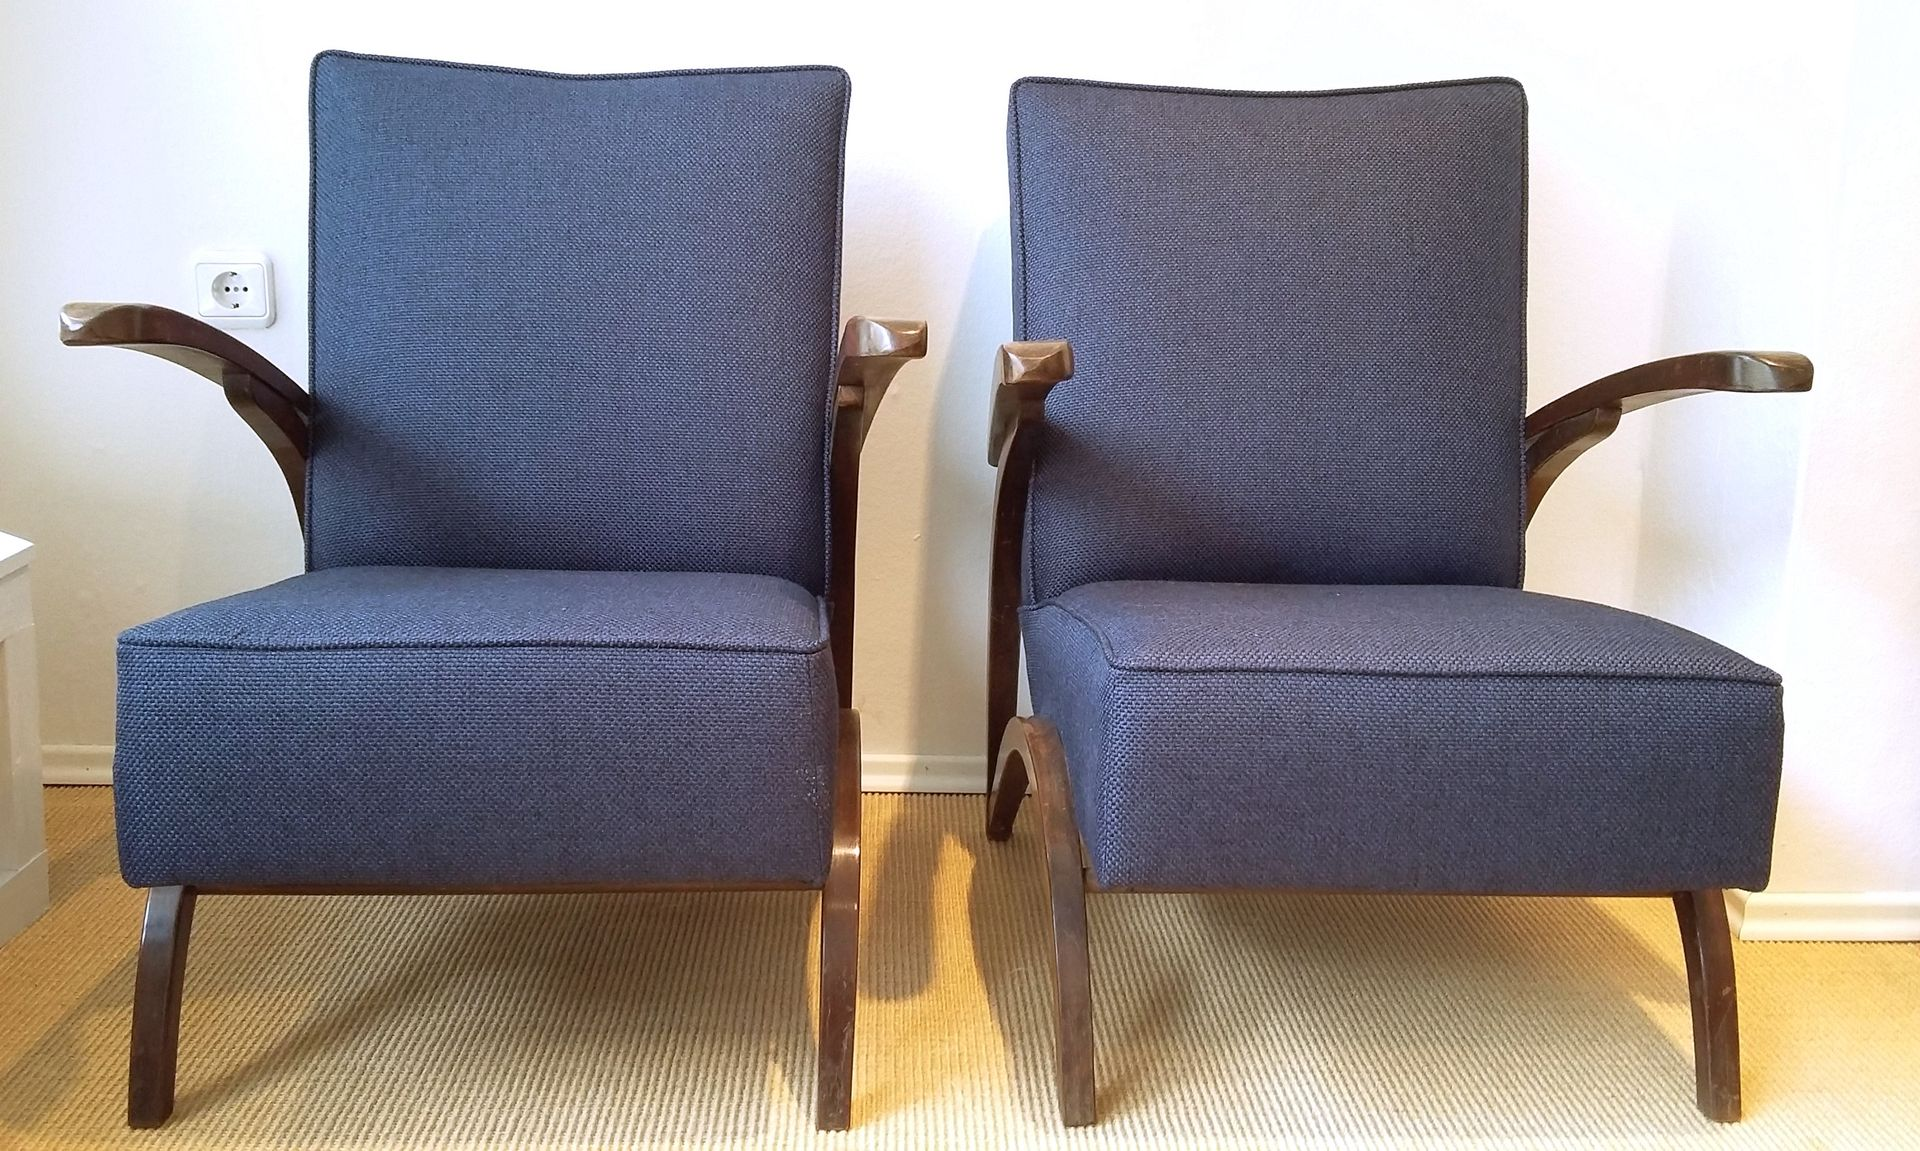 Vintage Armchairs By Jindrich Halabala, 1930s, Set Of 2